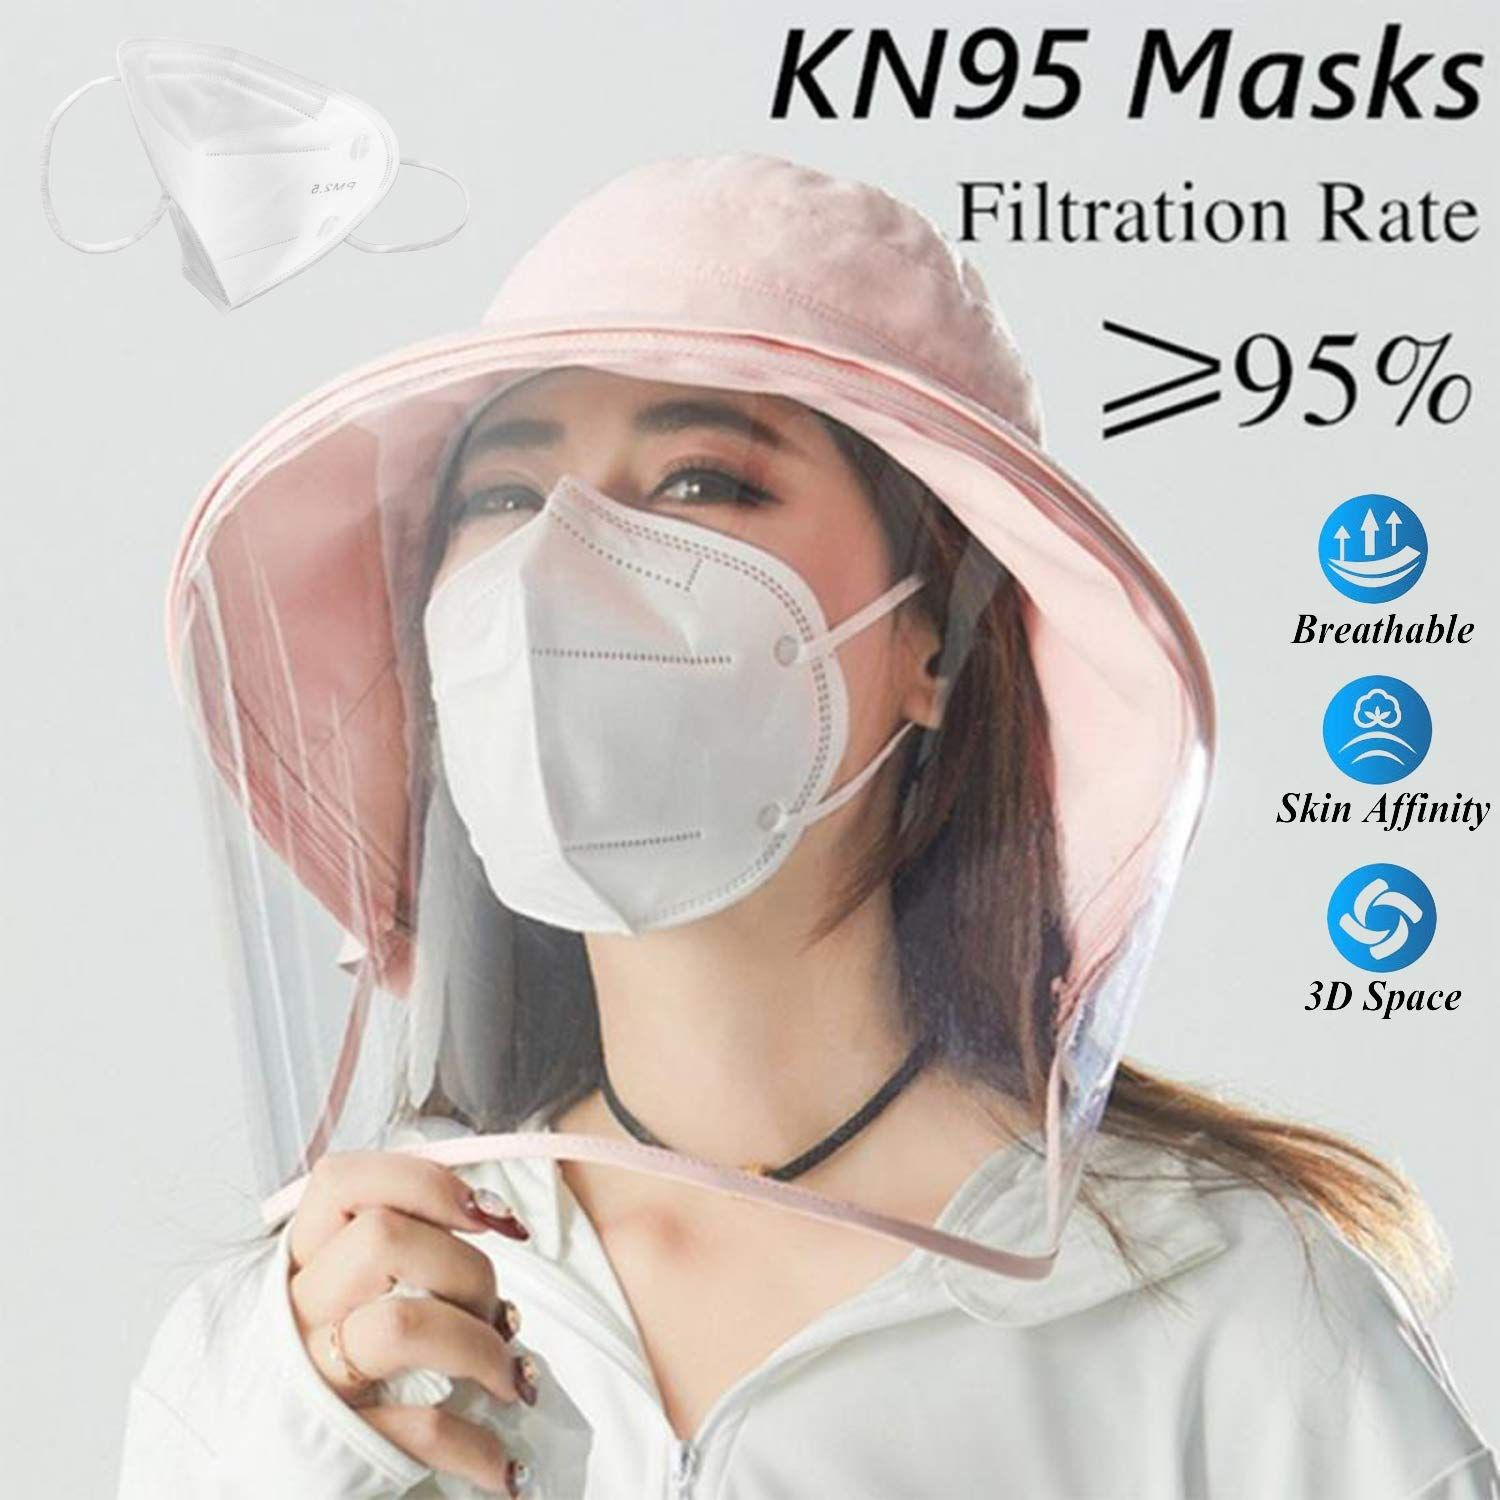 KN95 Masks Anti PM2.5 Protective Filter Breathable Mask